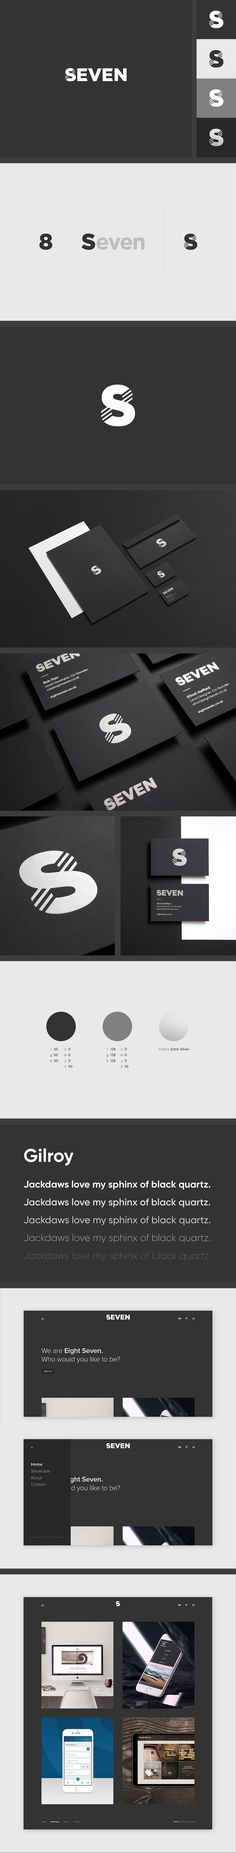 Eight Seven is a design development collective formed in 2015. Specialising in branding and web design, we developed an identity for ourselves which would symbolise consistency and creativity - Eight Seven Creative - eightseven.co.uk